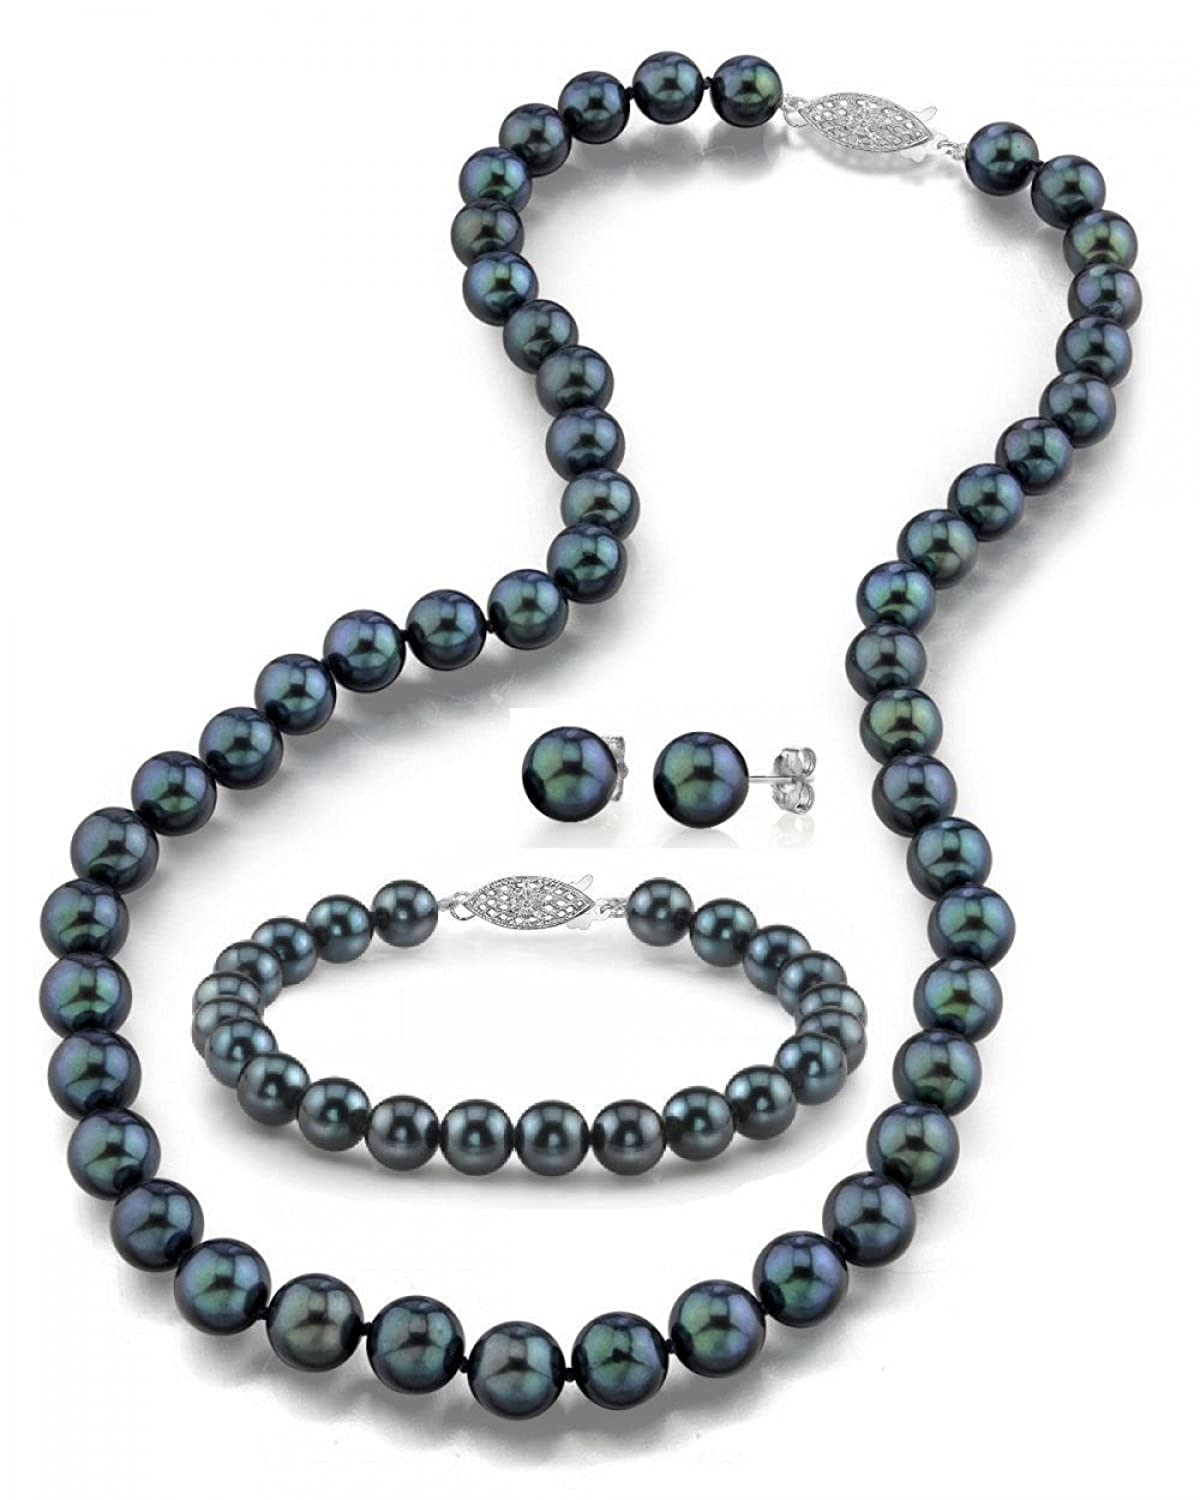 "14K Gold 6.5-7.0mm Black Akoya Cultured Pearl Necklace, Bracelet & Earrings Set, 18"" - AA+ Quality"